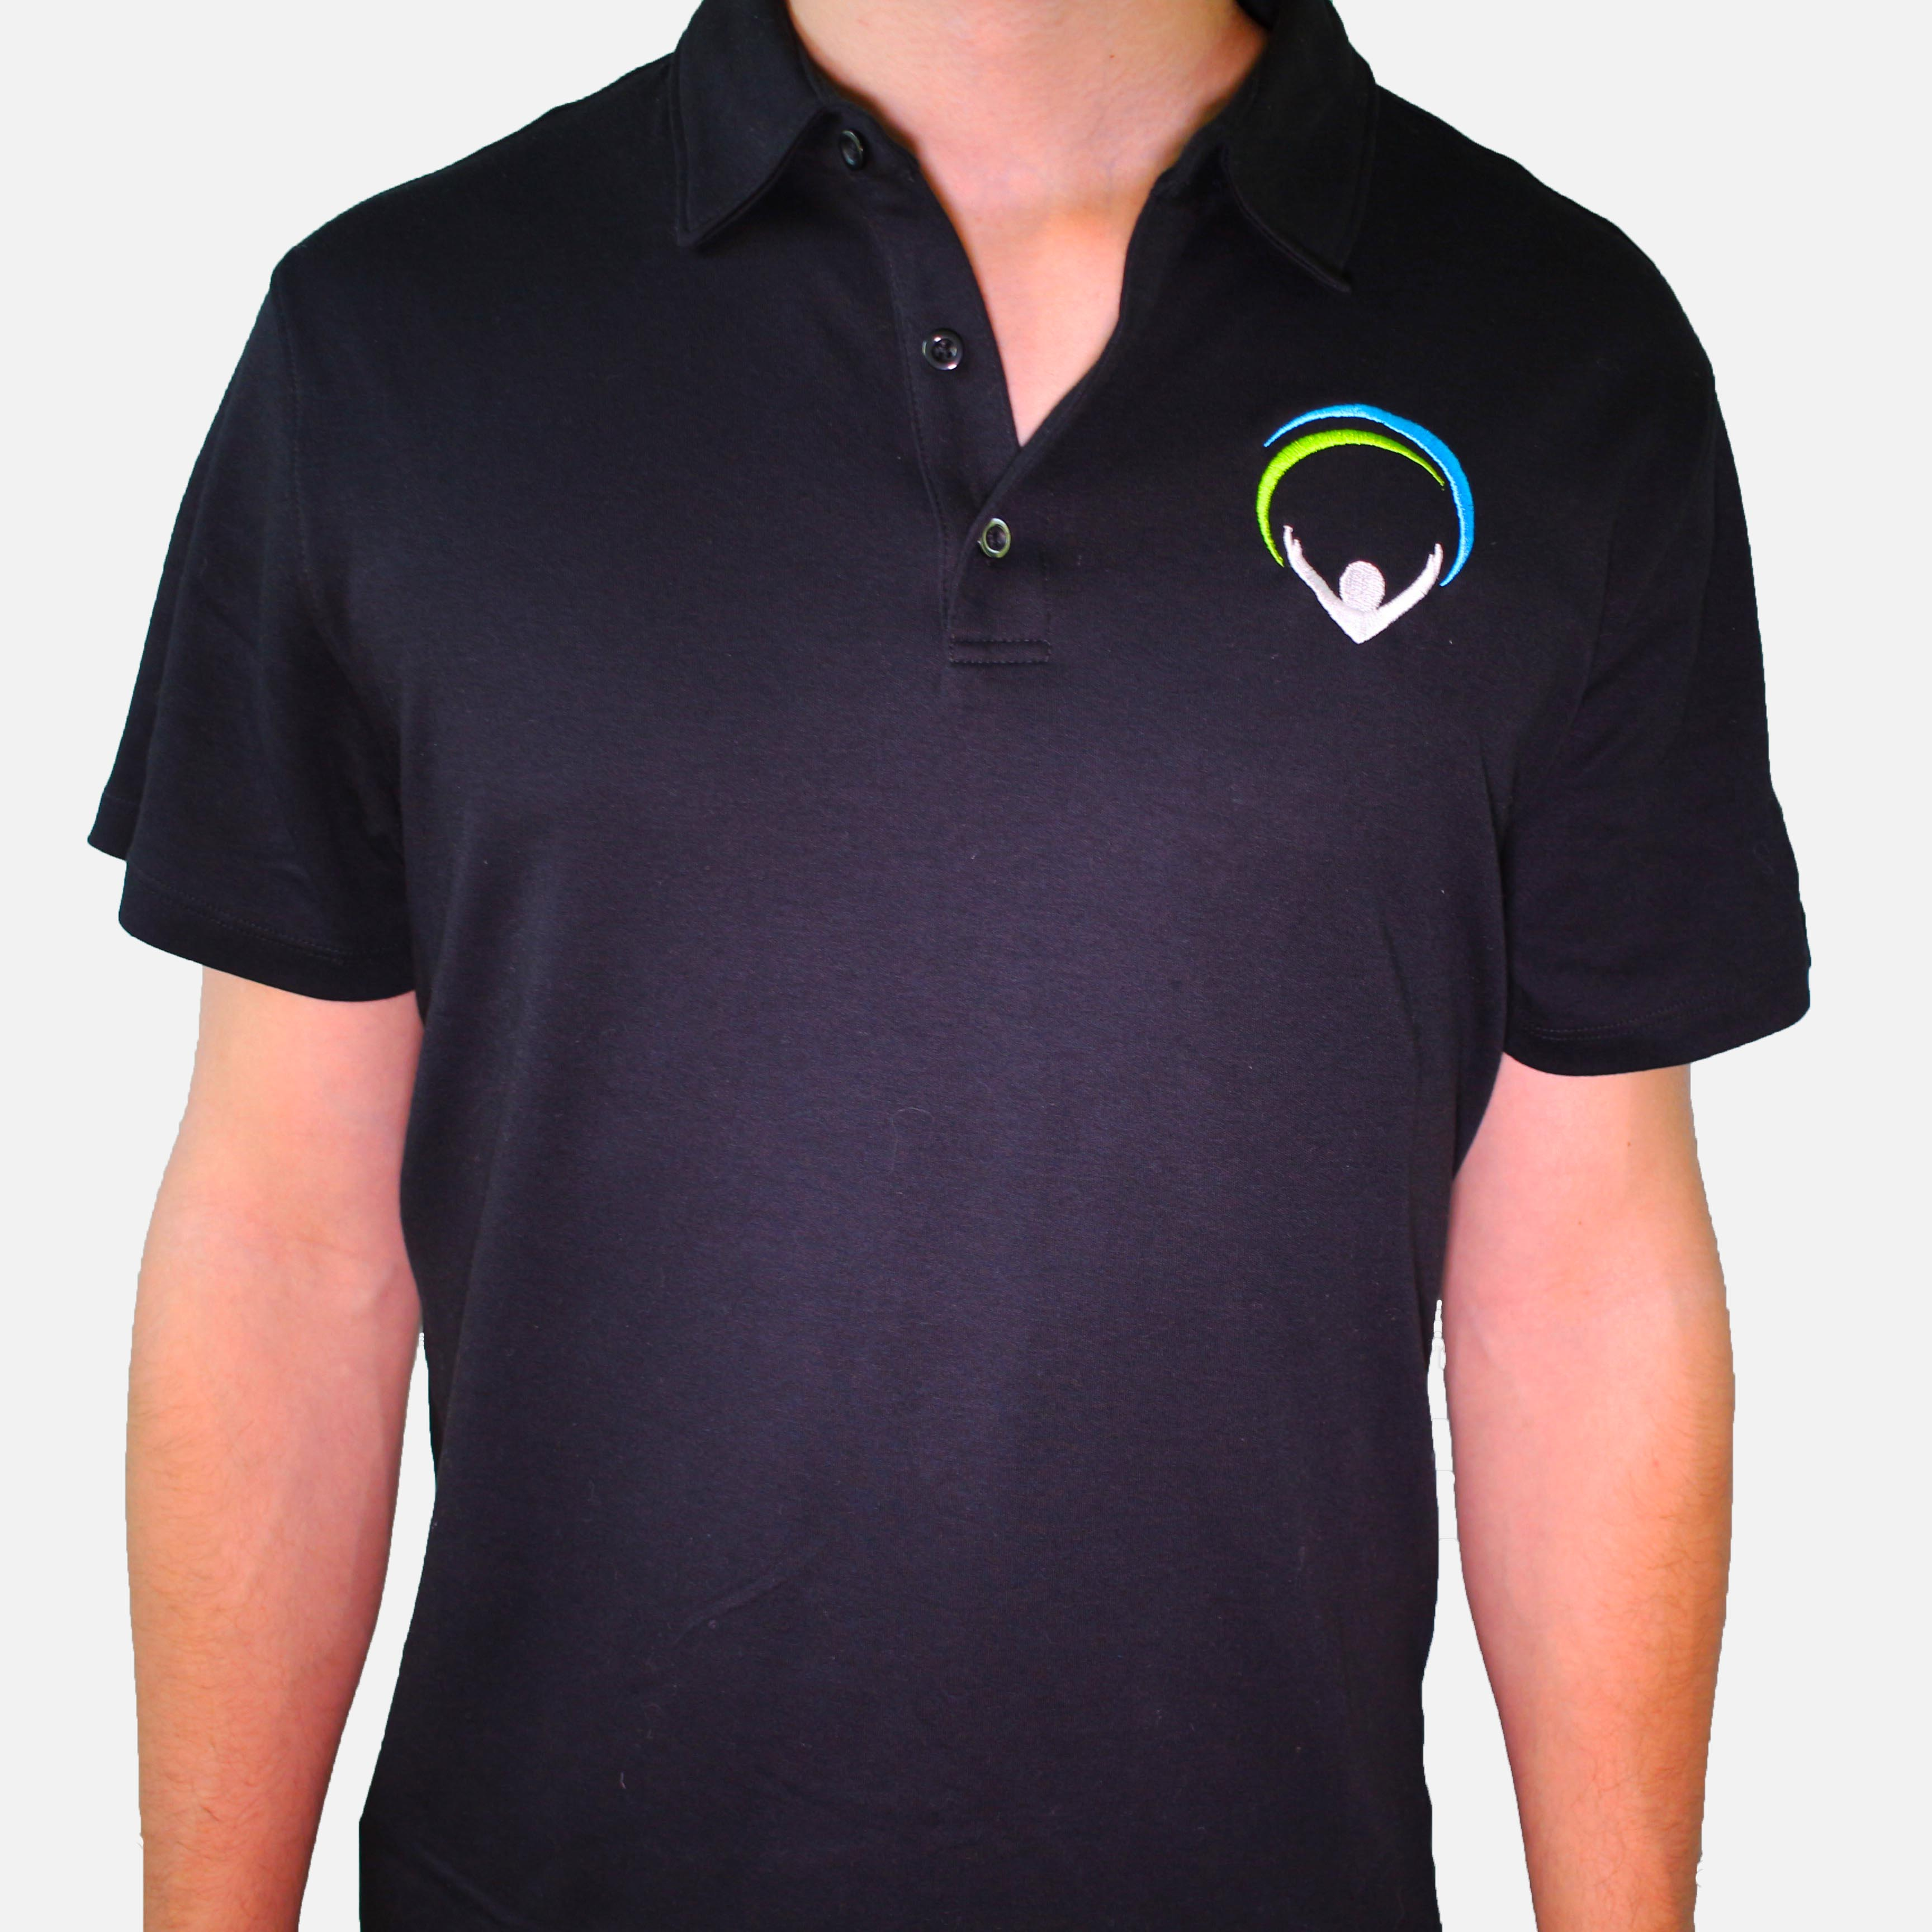 LifeSuccess.com Polo